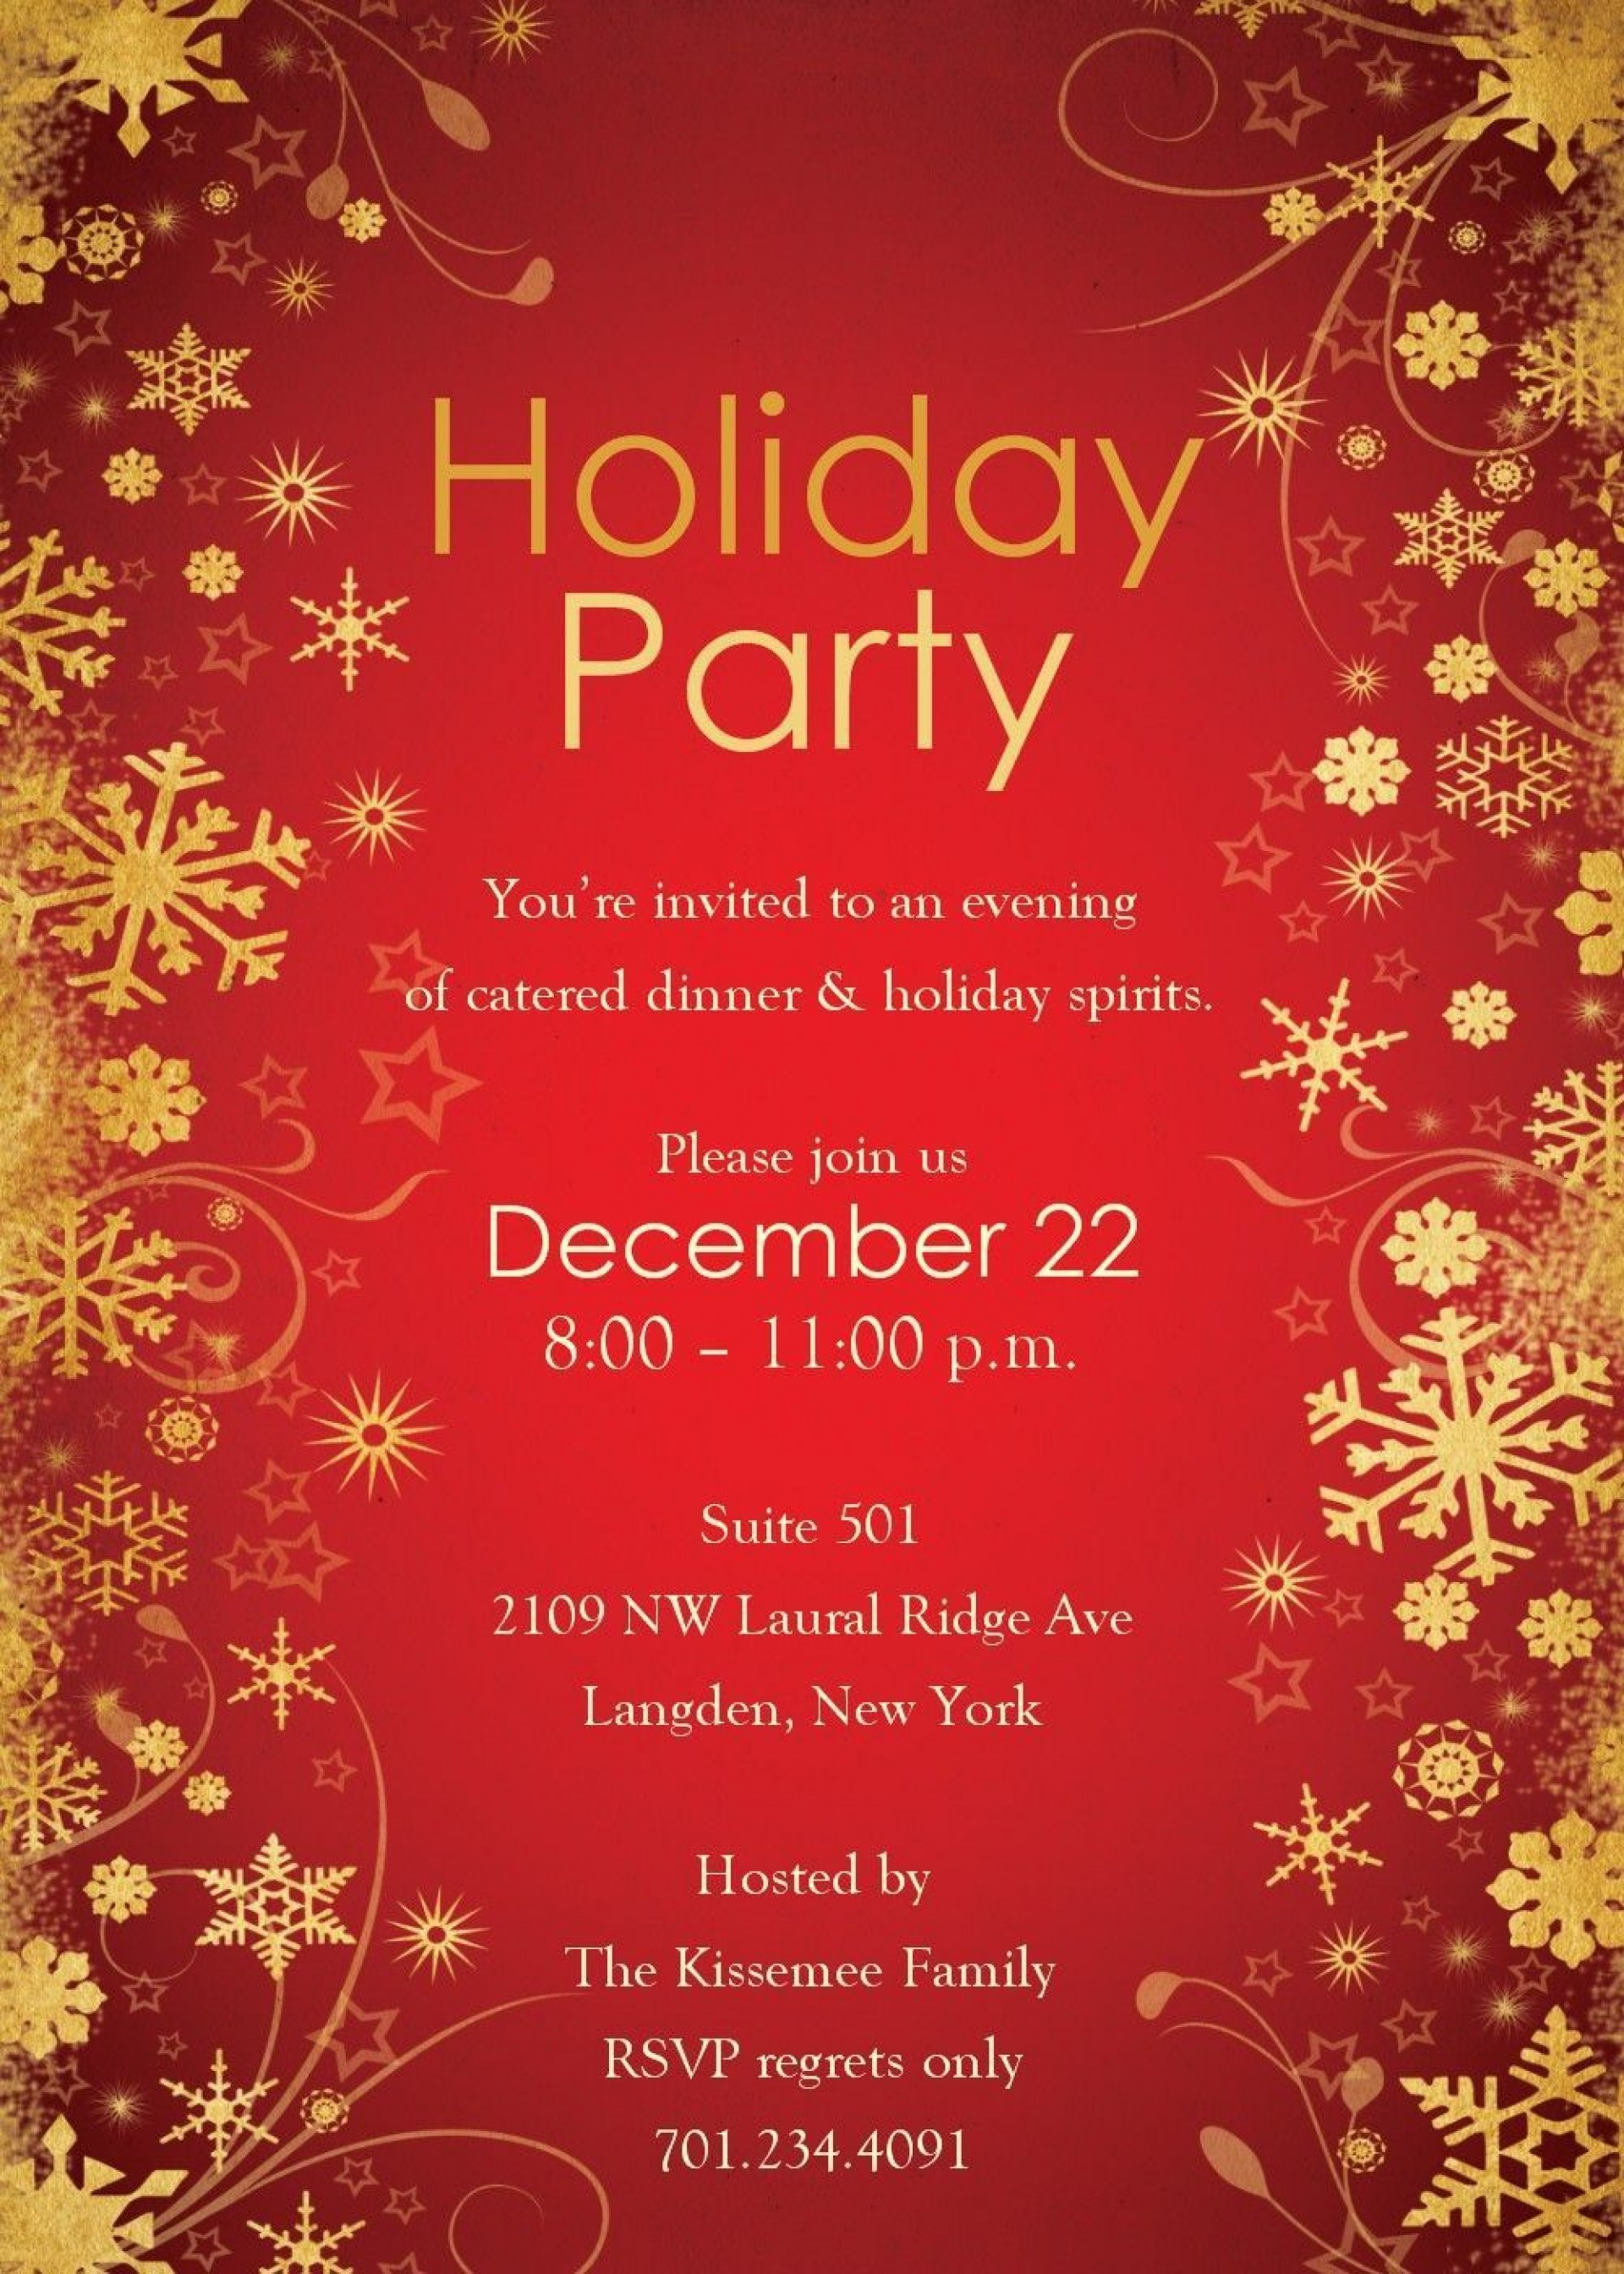 006 Striking Free Holiday Party Invitation Template Design  Templates Printable Downloadable Christma Online1920